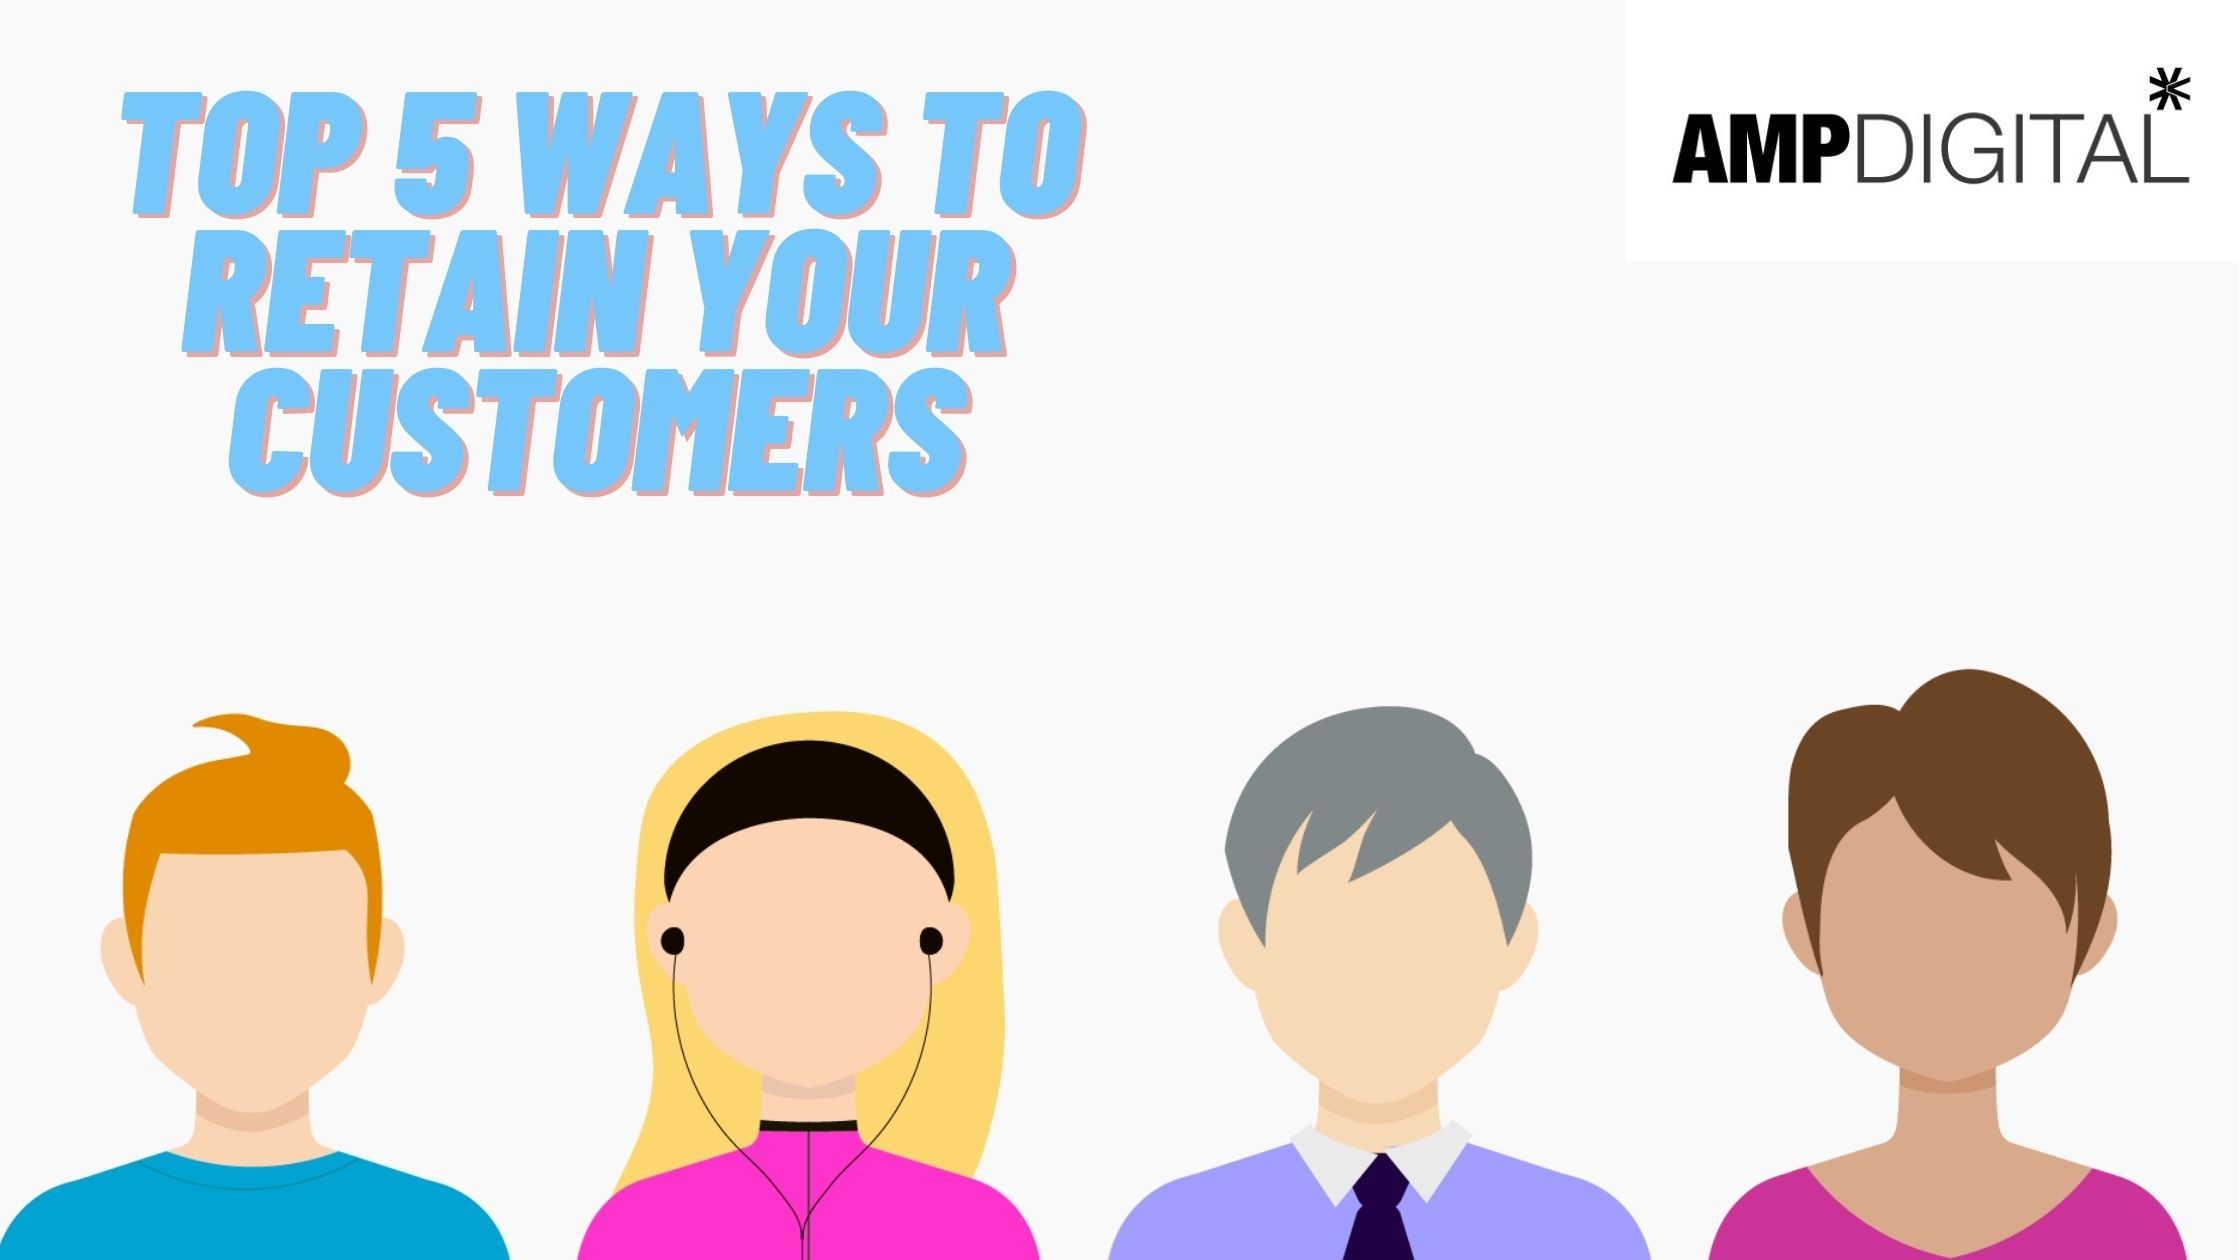 Top 5 Ways To Retain Your Customers